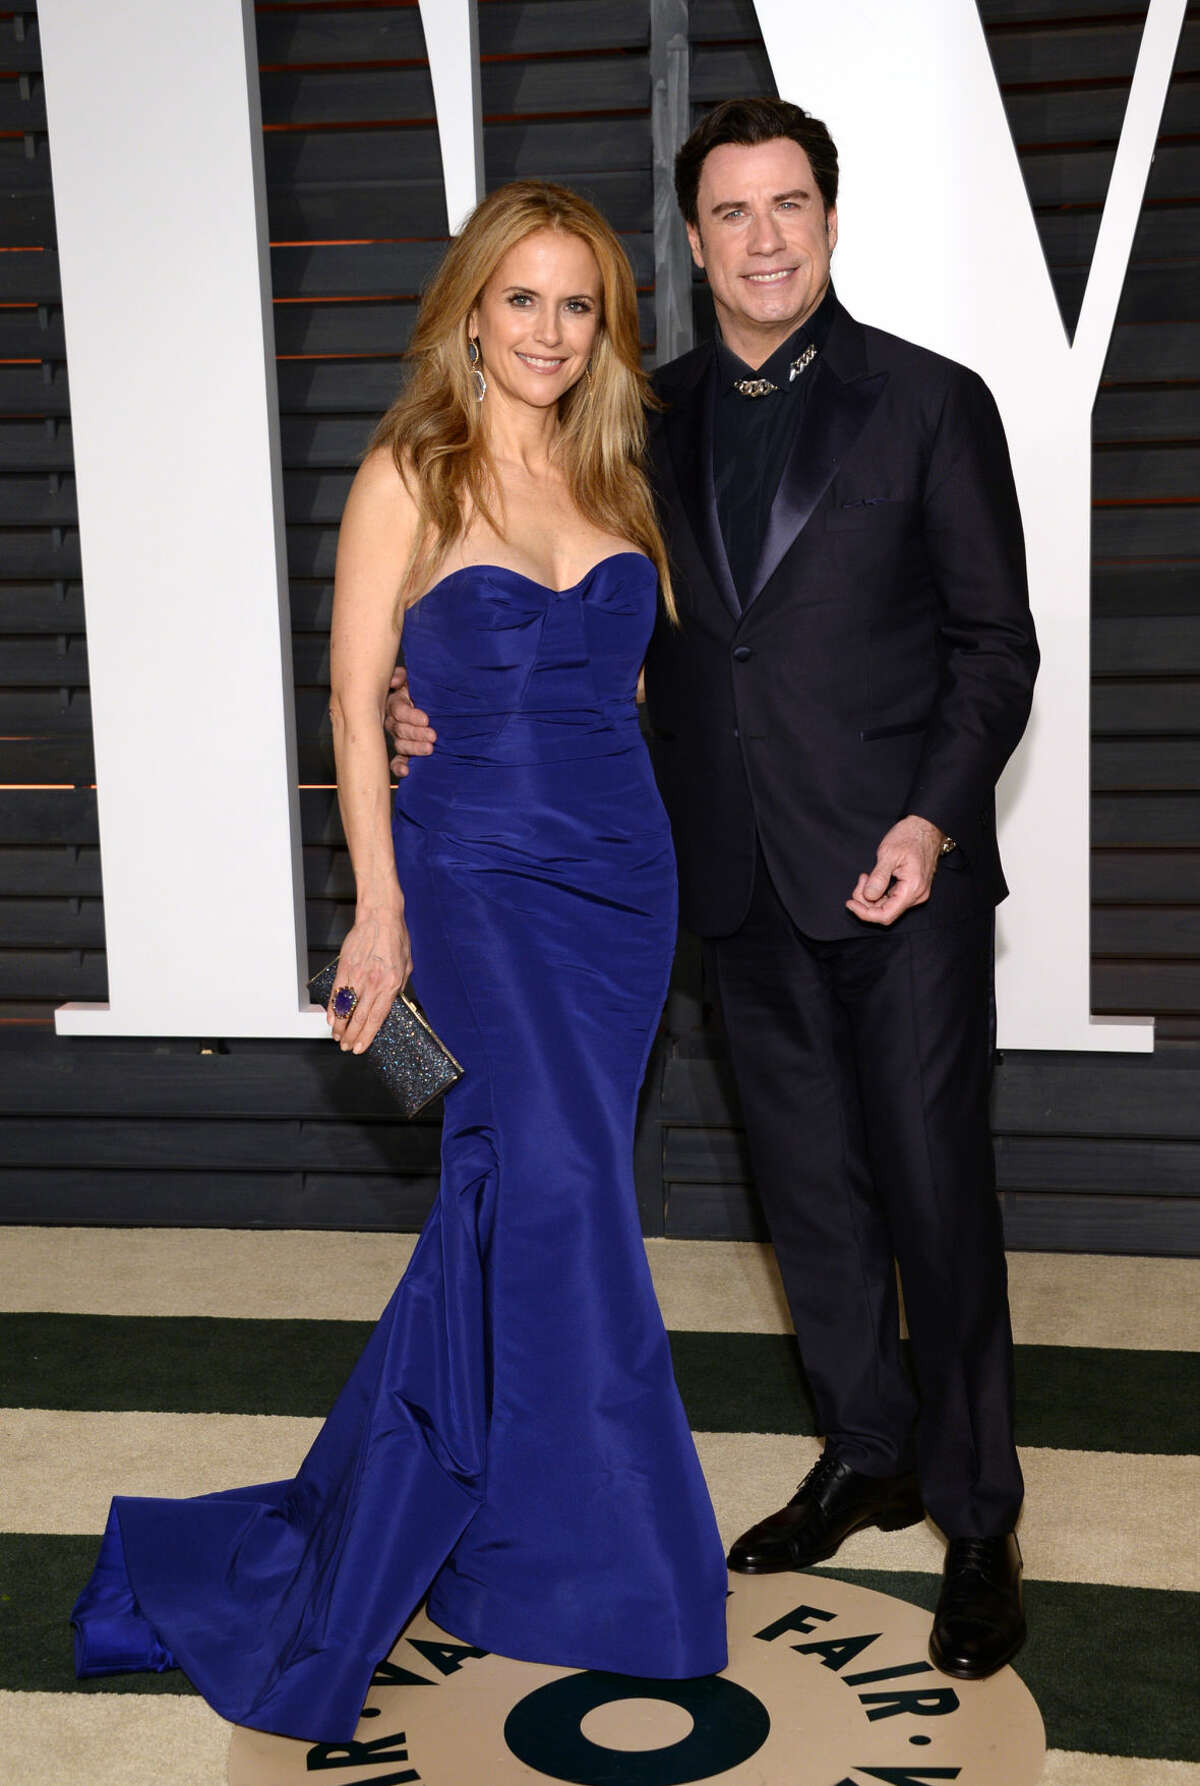 Kelly Preston, left, and John Travolta arrive at the 2015 Vanity Fair Oscar Party on Sunday, Feb. 22, 2015, in Beverly Hills, Calif. (Photo by Evan Agostini/Invision/AP)